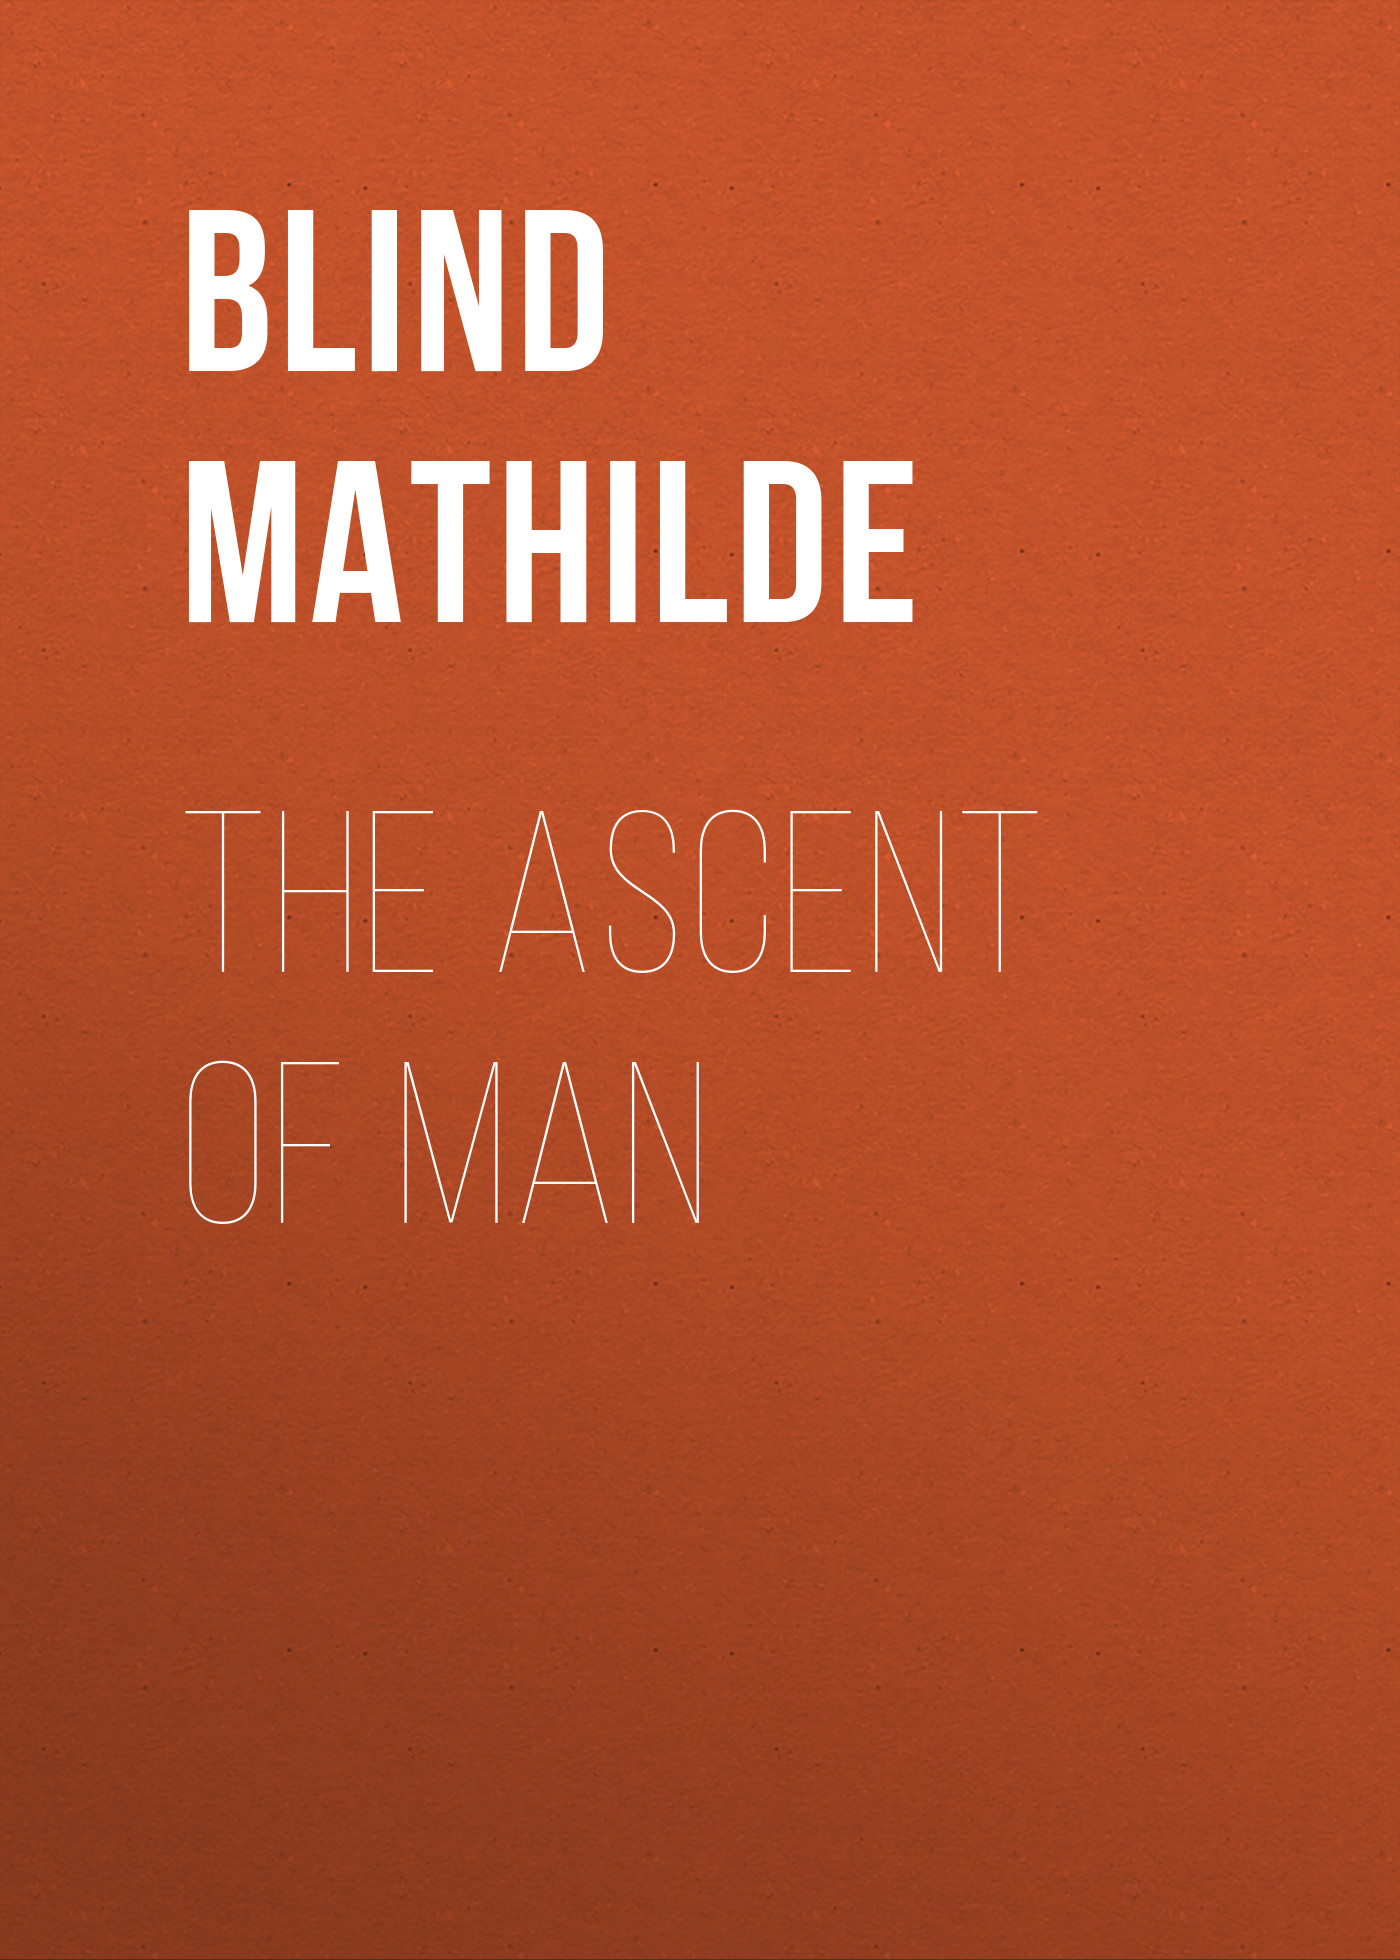 Blind Mathilde The Ascent of Man mathilde plume футболка